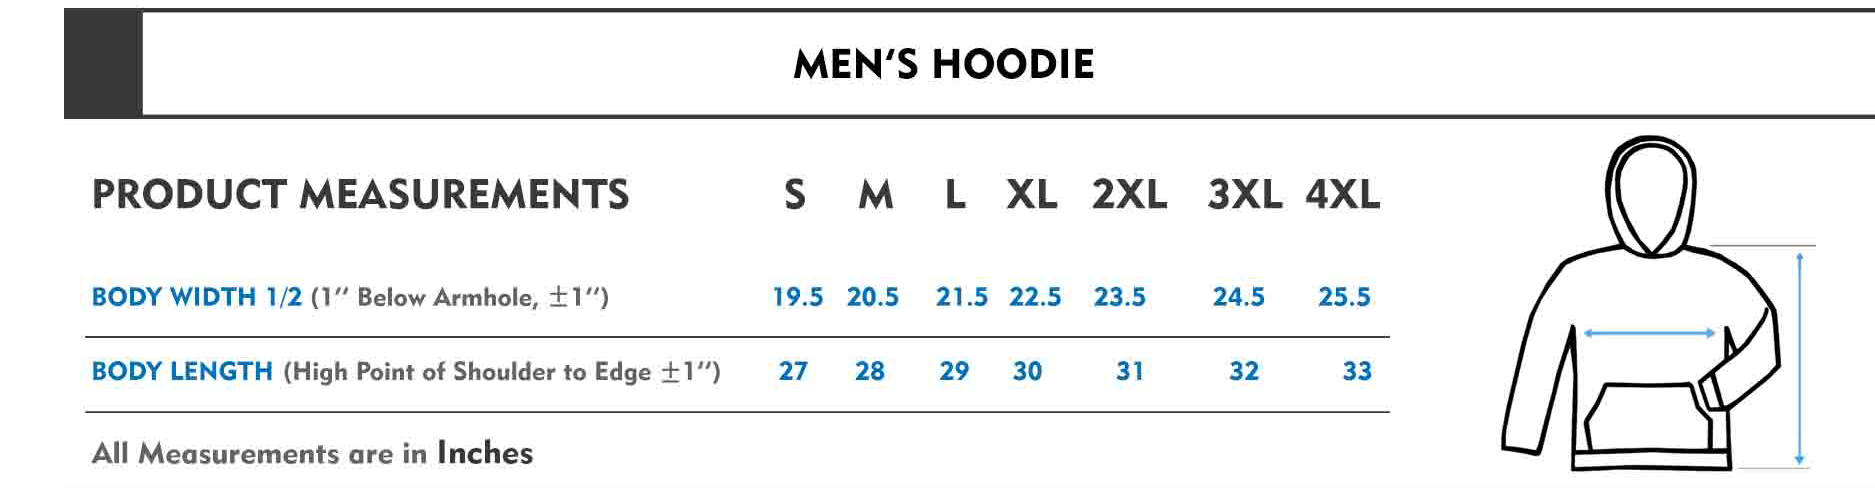 mens hoodie size chart